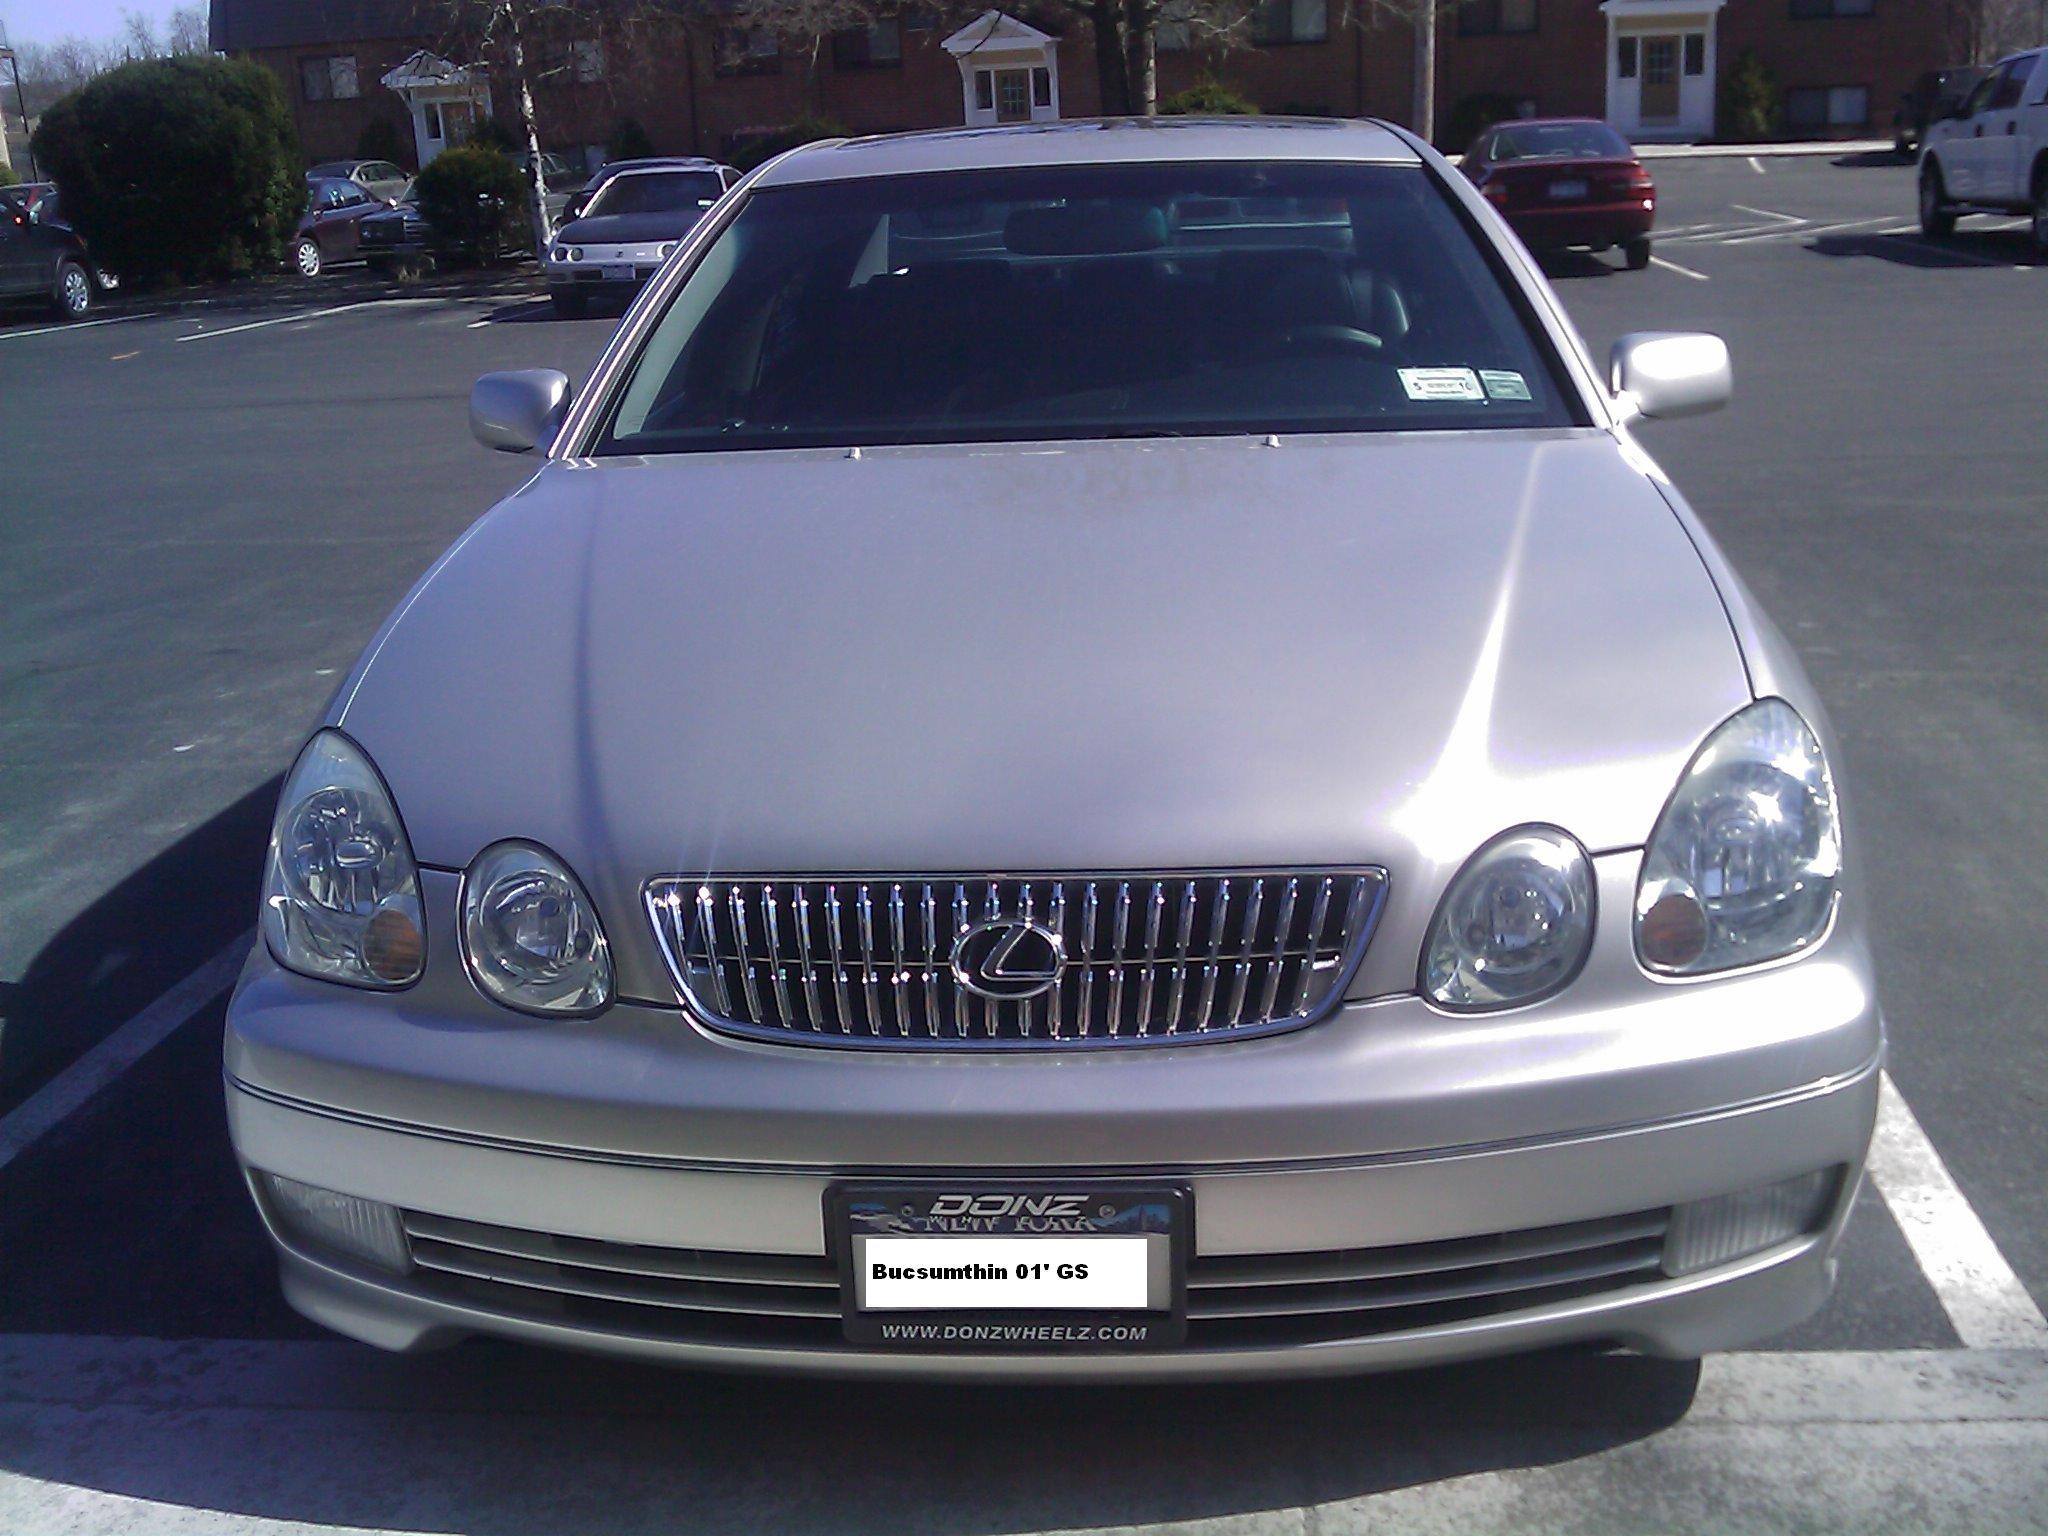 Another Bucsumthin 2001 Lexus GS post... - 12755476